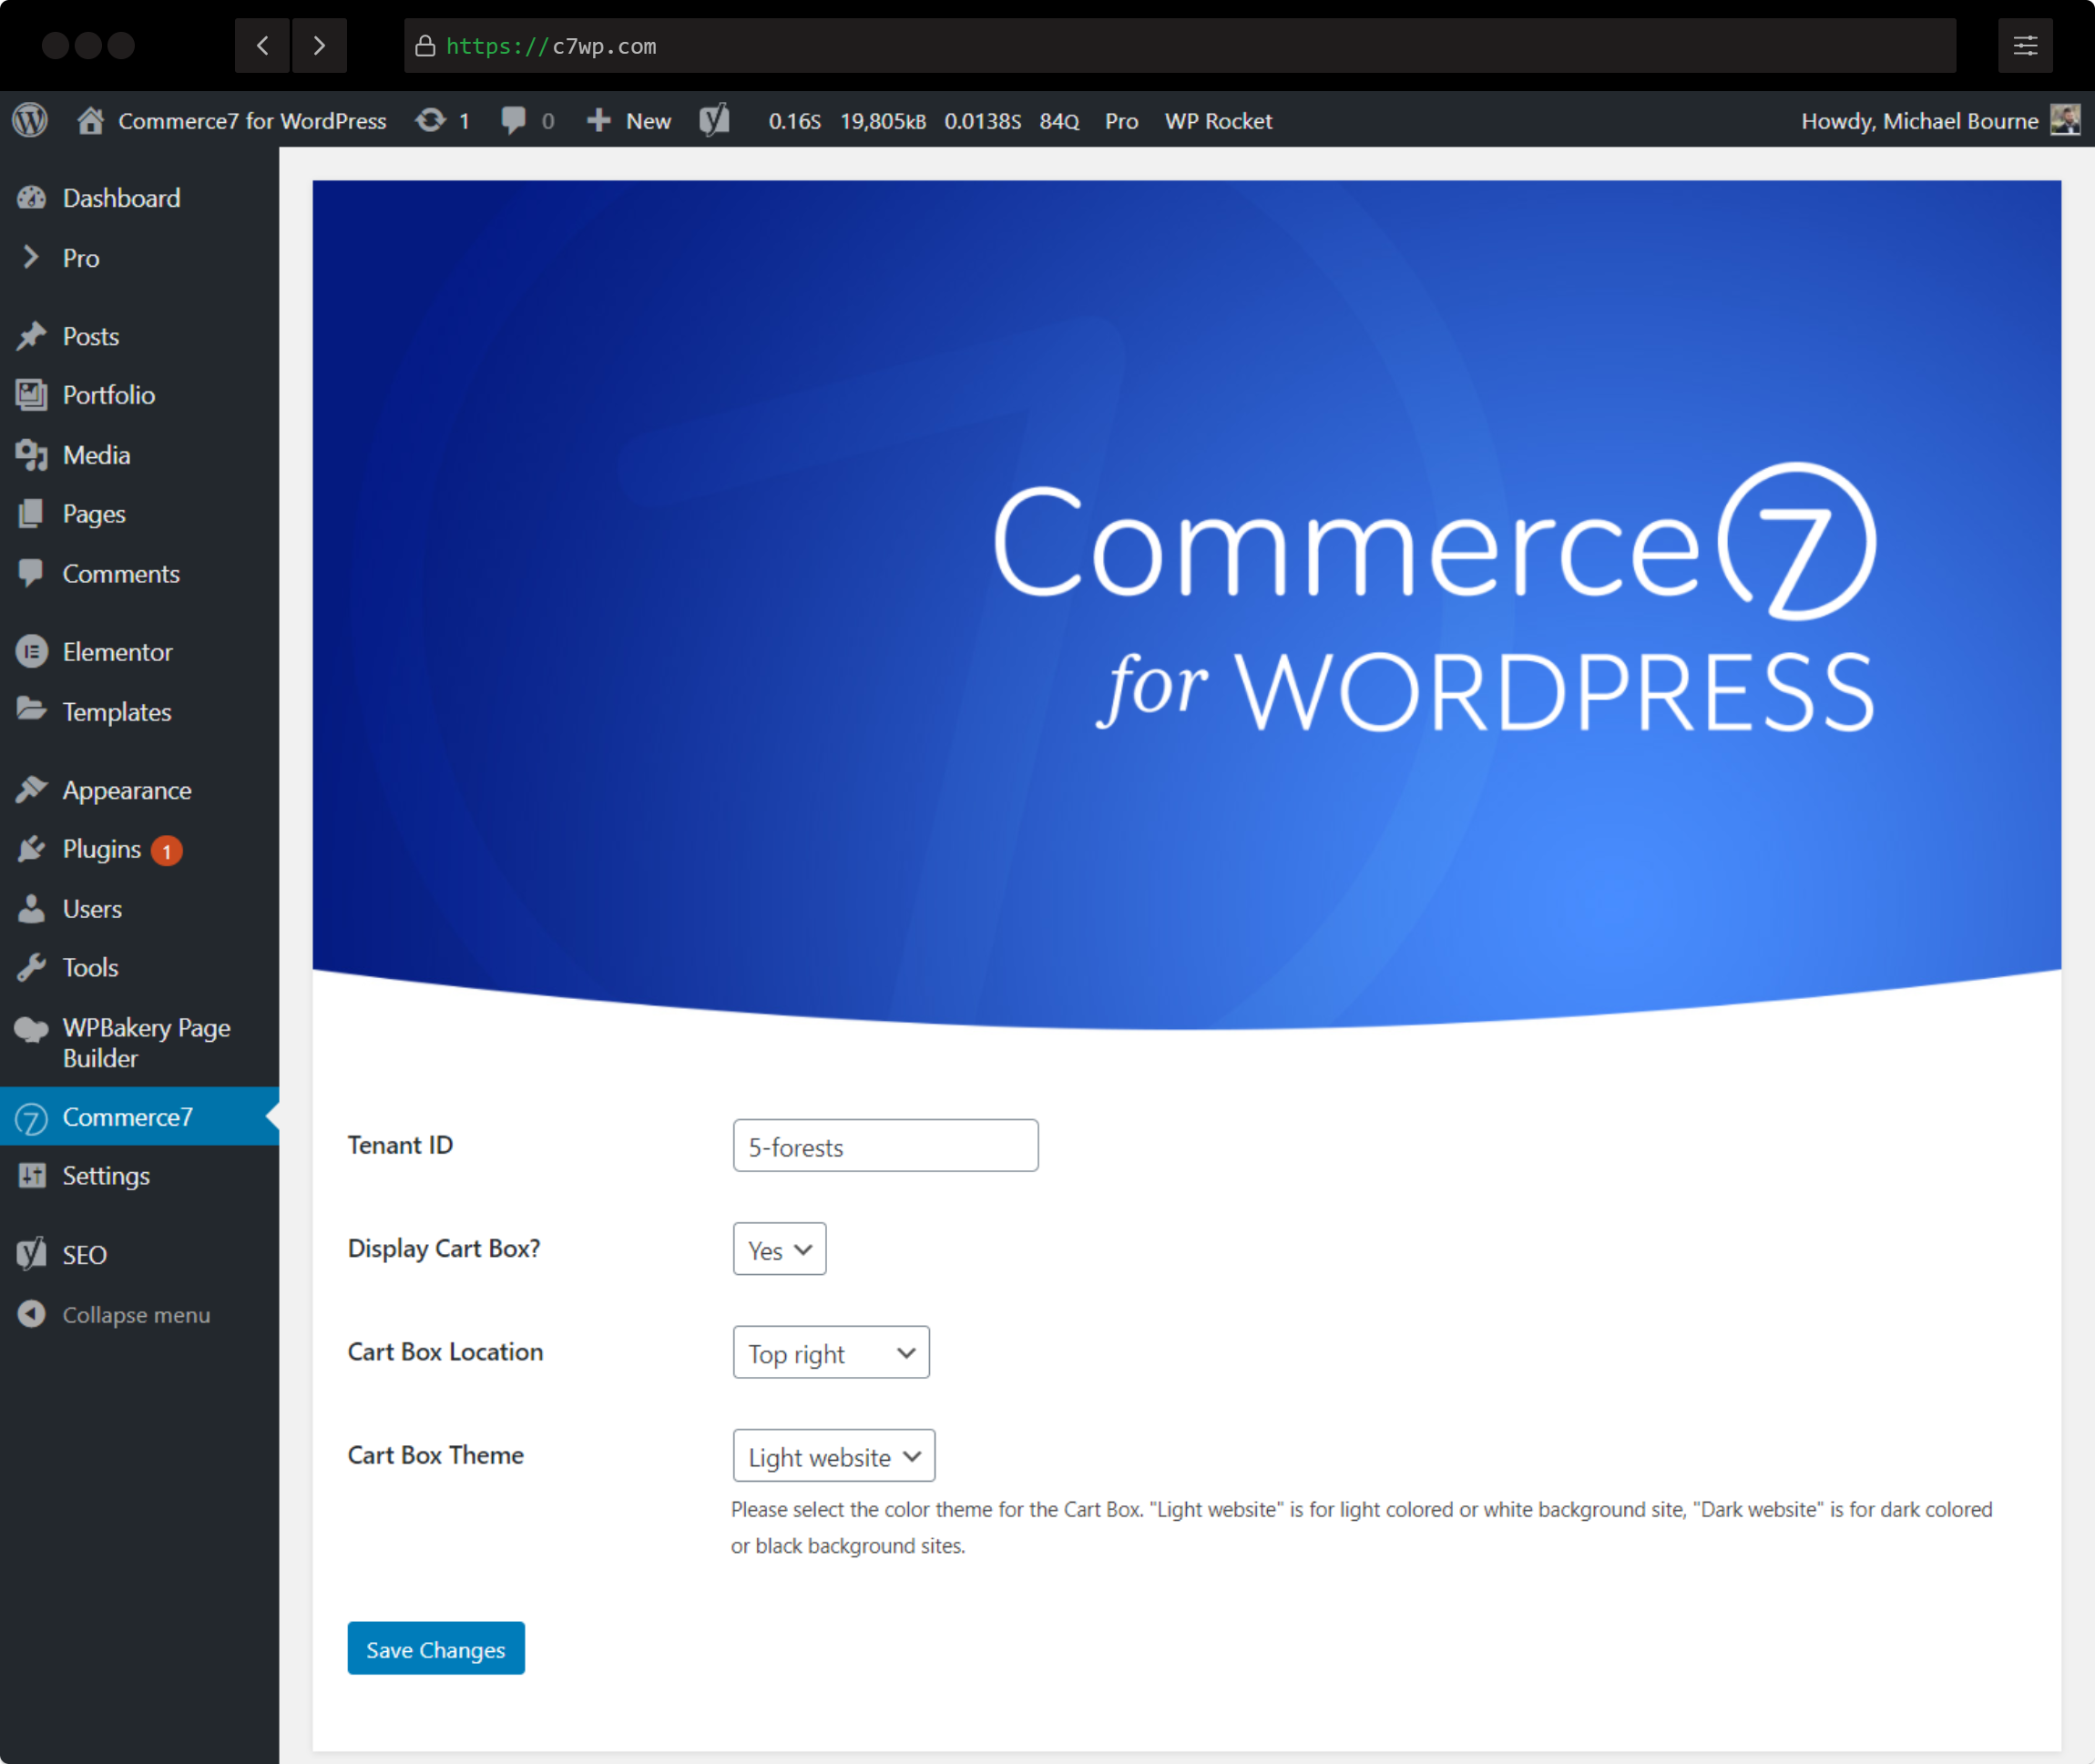 Commerce7 for WordPress Admin View